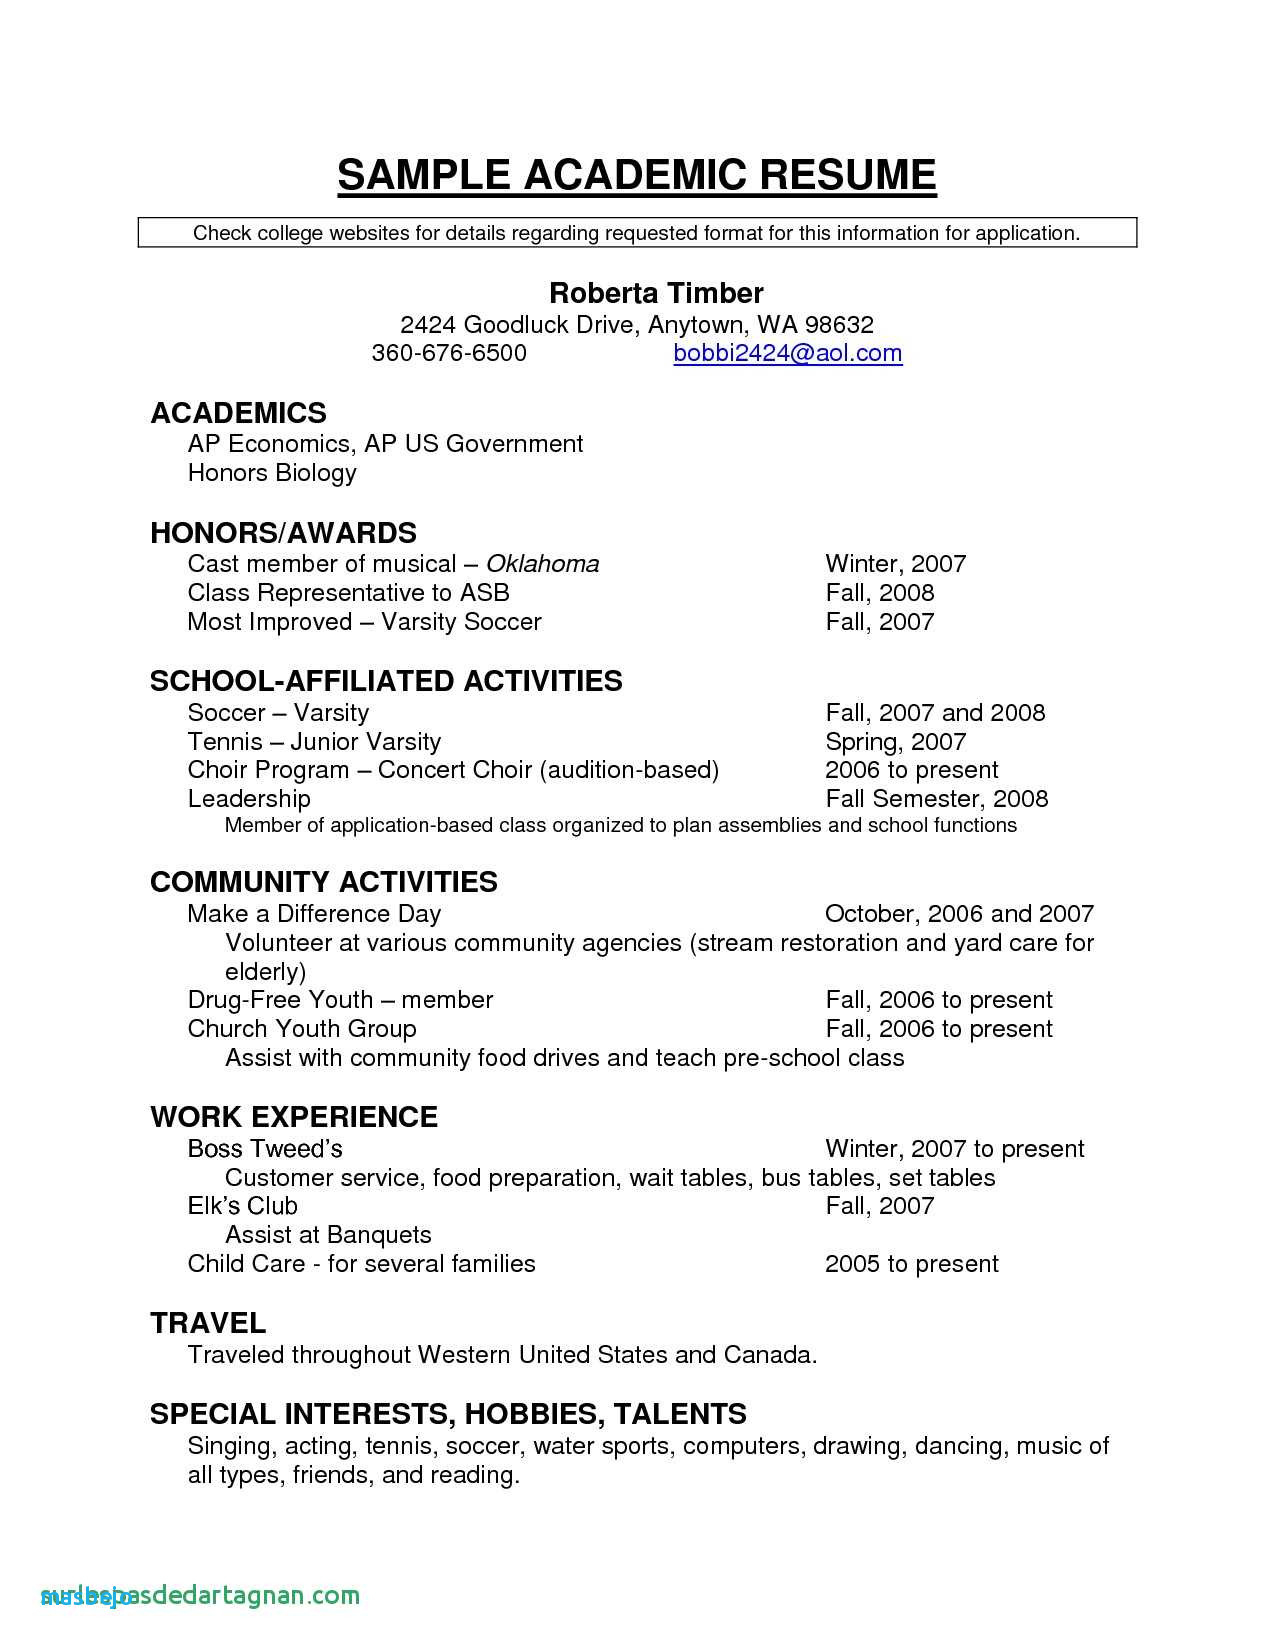 resume examples high school Collection-puter Resume Examples Unique Resume For Highschool Students Excellent Resumes 0d High 6-l